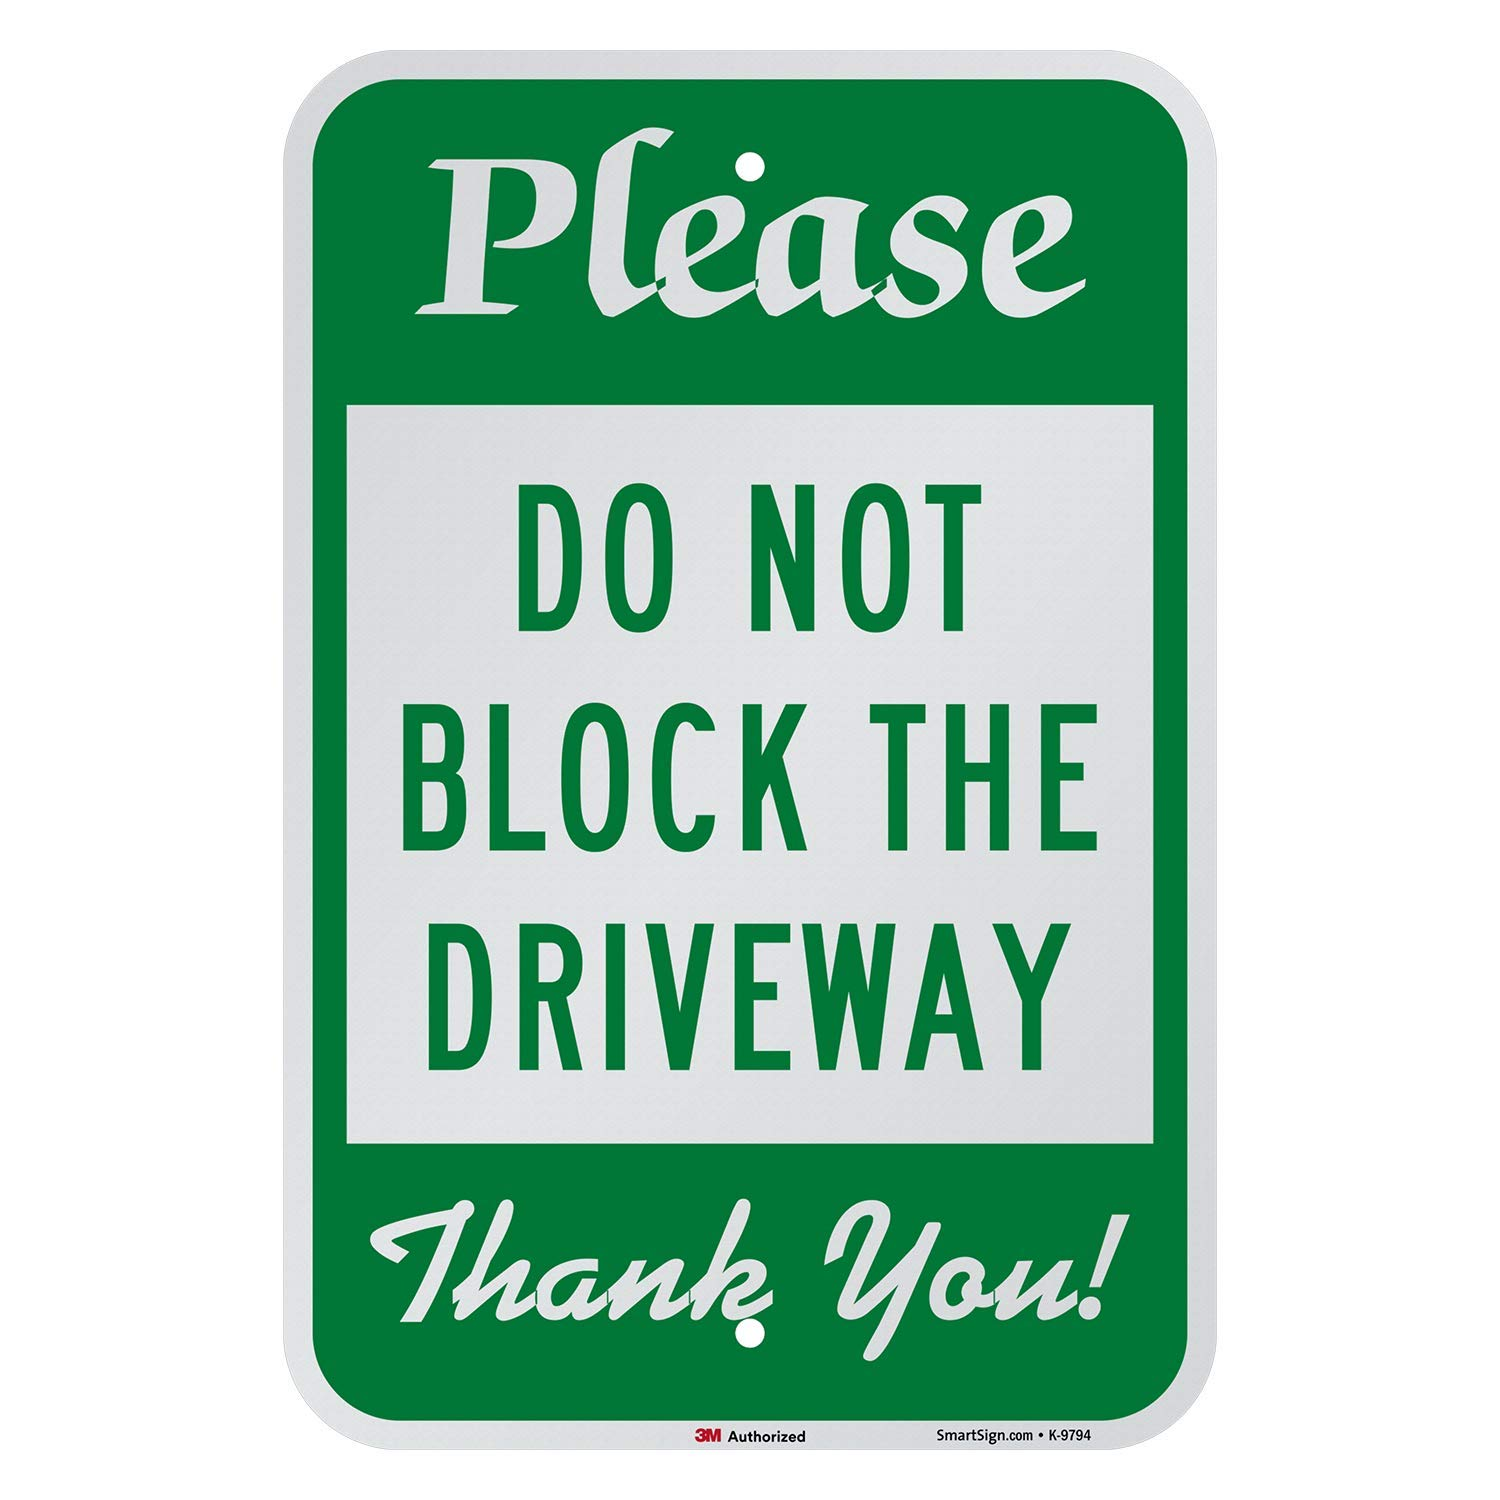 SmartSign Aluminum Sign, Legend \'Please Do Not Block The Driveway\', 18\' High X 12\' Wide, Green on White Legend Please Do Not Block The Driveway 18 High X 12 Wide Lyle Signs K-9794-AL-12x18